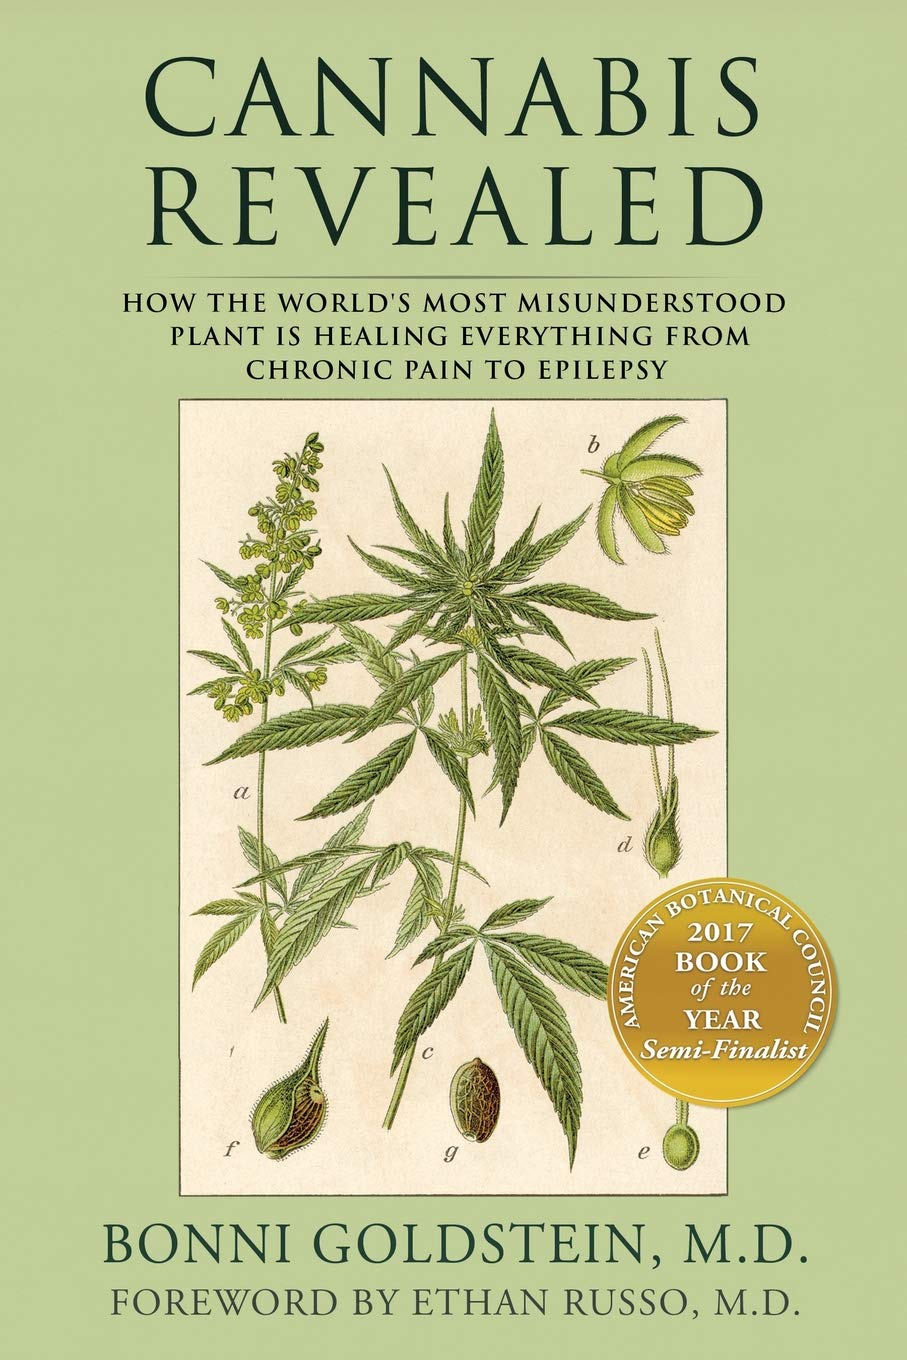 Cannabis Revealed  How The World's Most Misunderstood Plant Is Healing Everything From Chronic Pain To Epilepsy